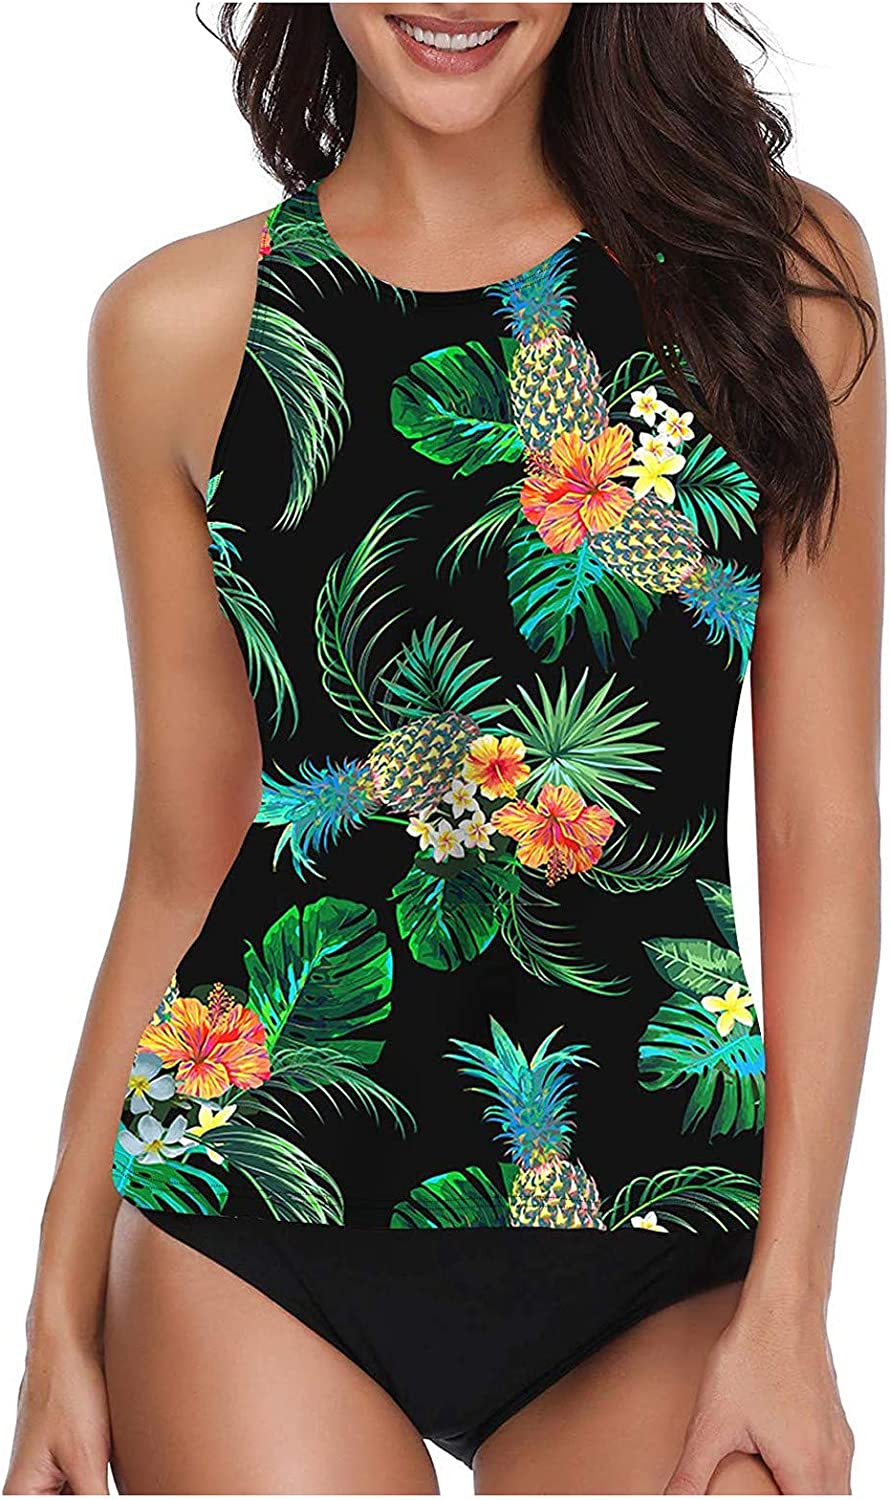 Tankini Swimsuits for Women Racerback Tank Tummy Tops Milwaukee Mall and Contor Max 70% OFF